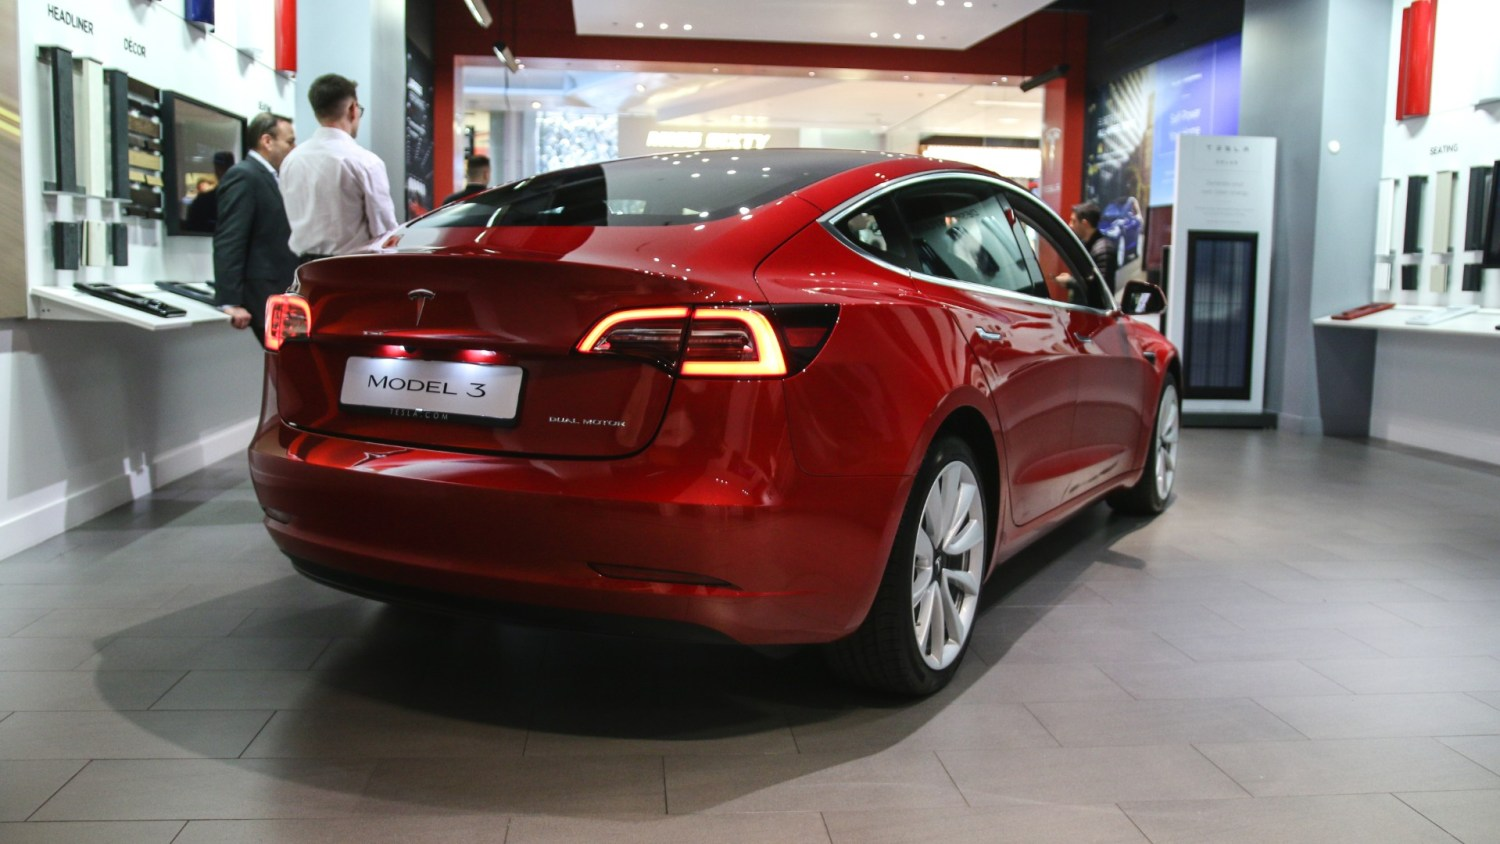 The Tesla Model 3 Is The Uk S Hottest Ev To Lease Motoring Research